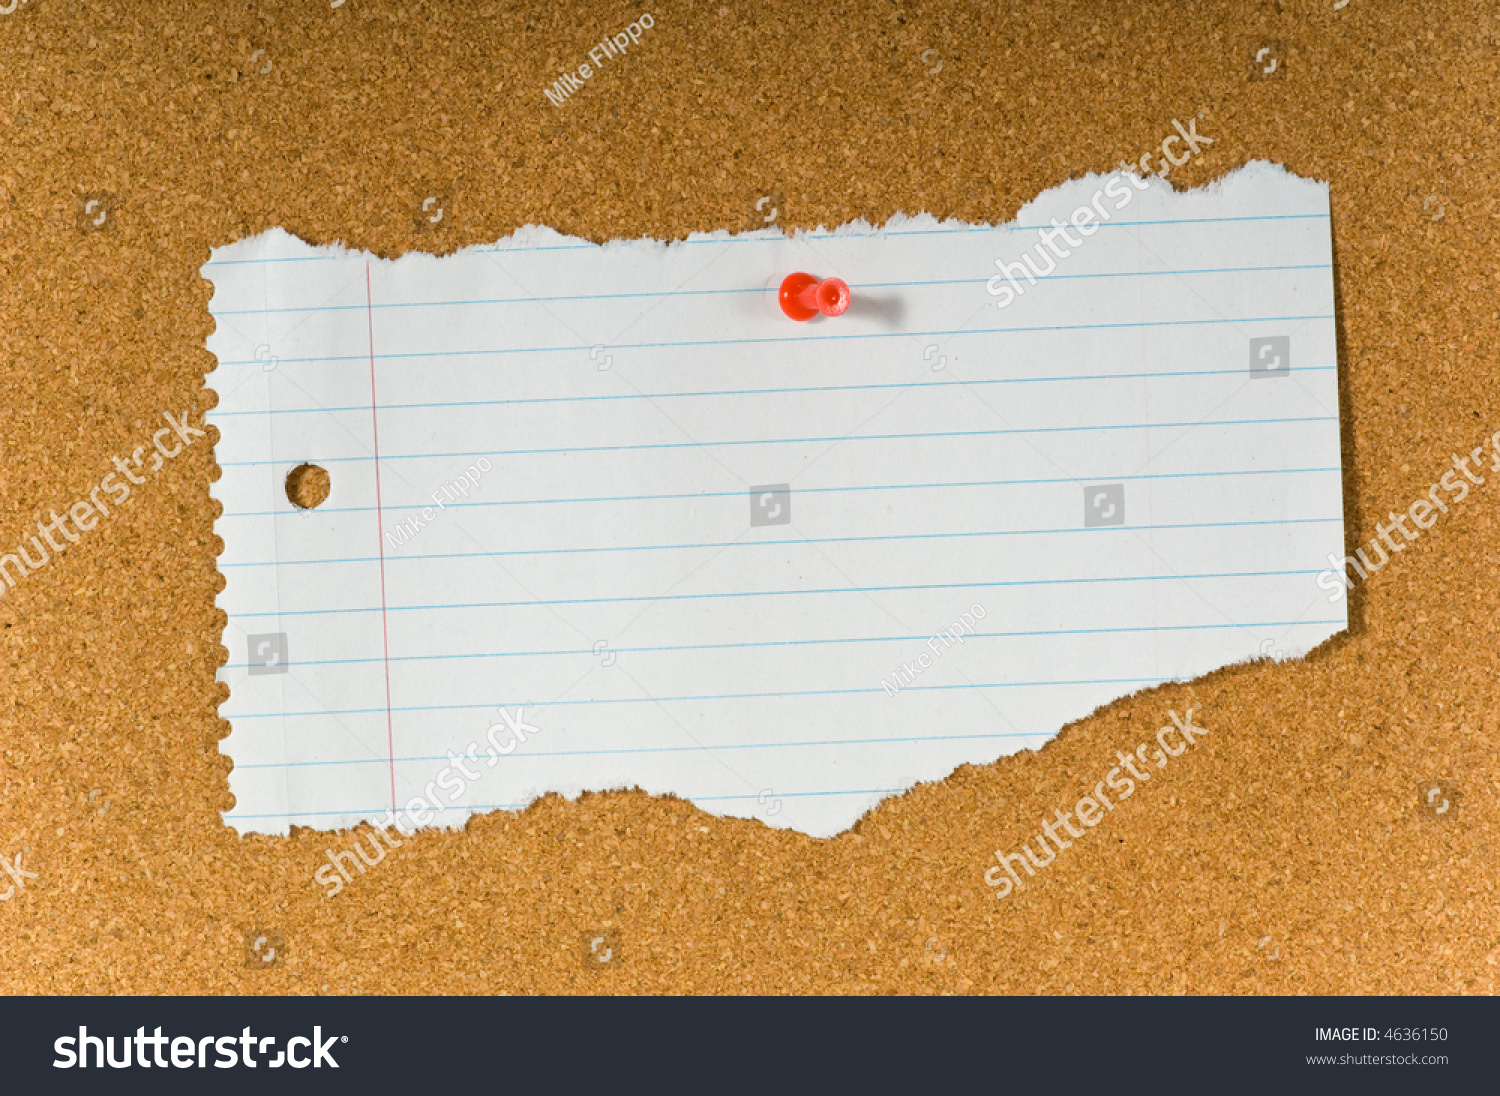 blank torn notebook paper on cork stock photo (edit now) 4636150